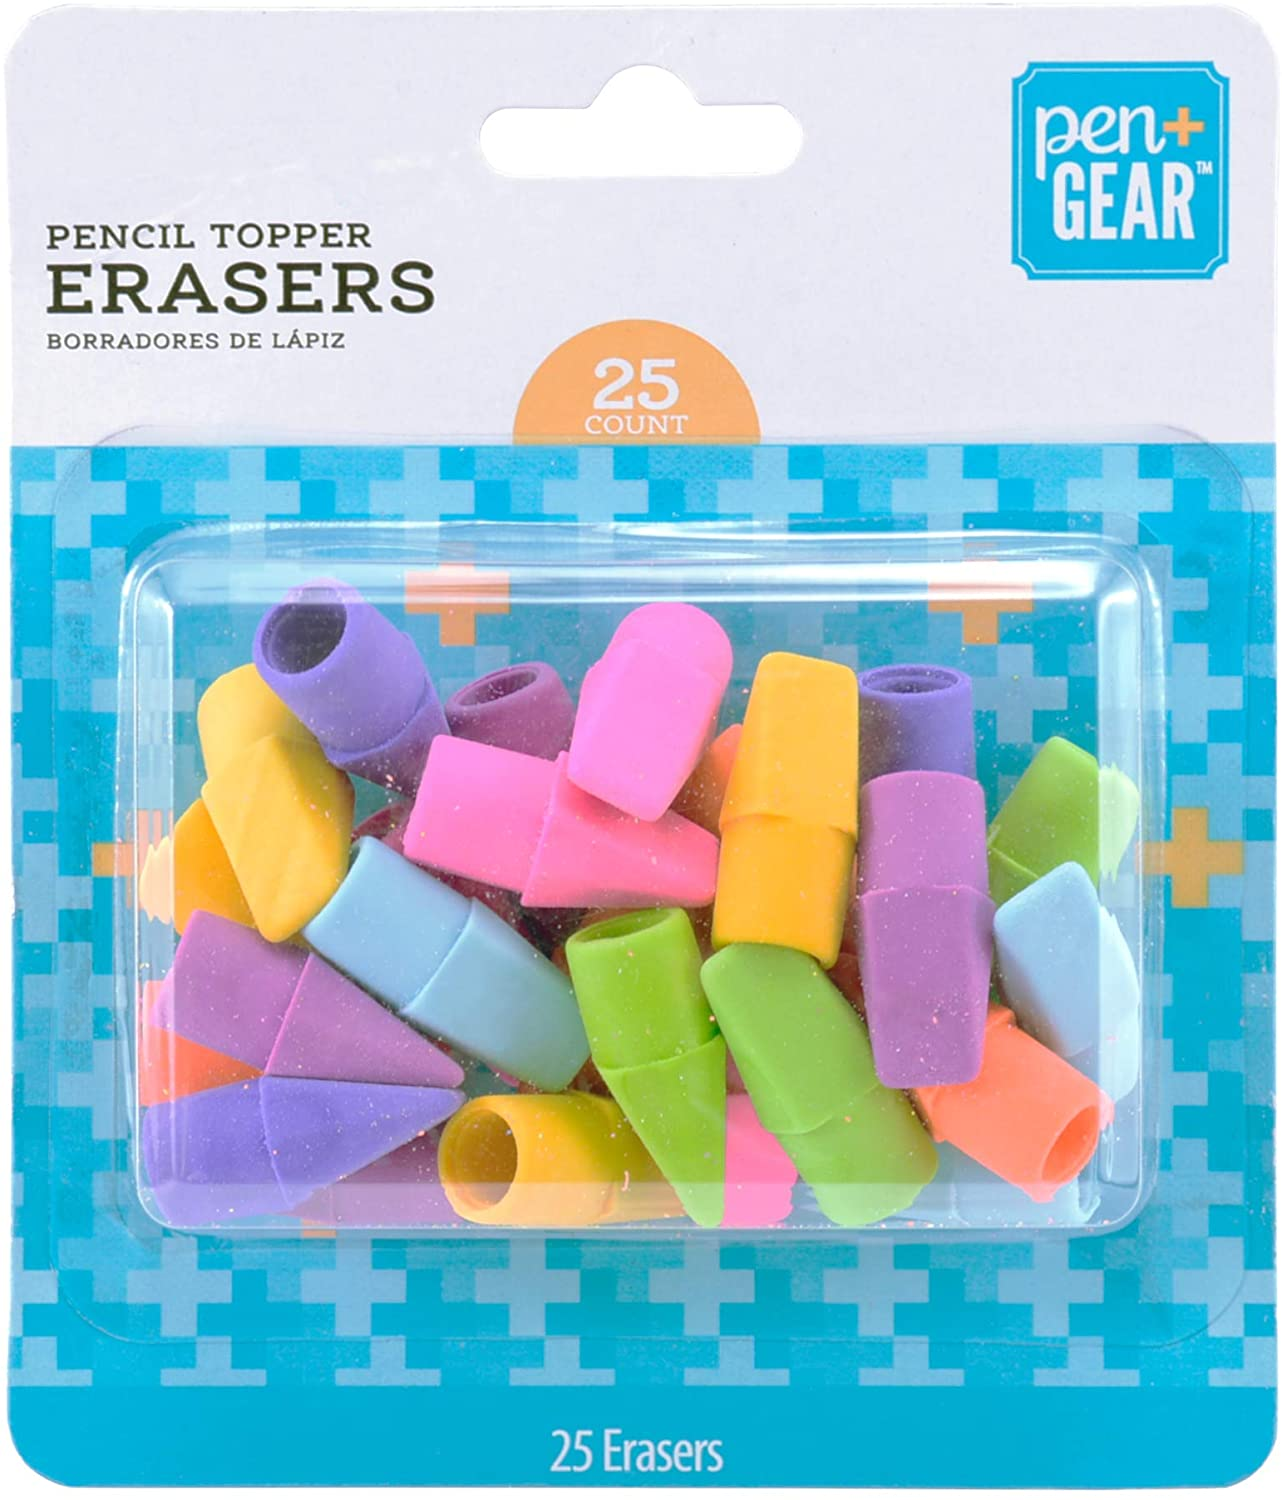 Pencil Topper Erasers